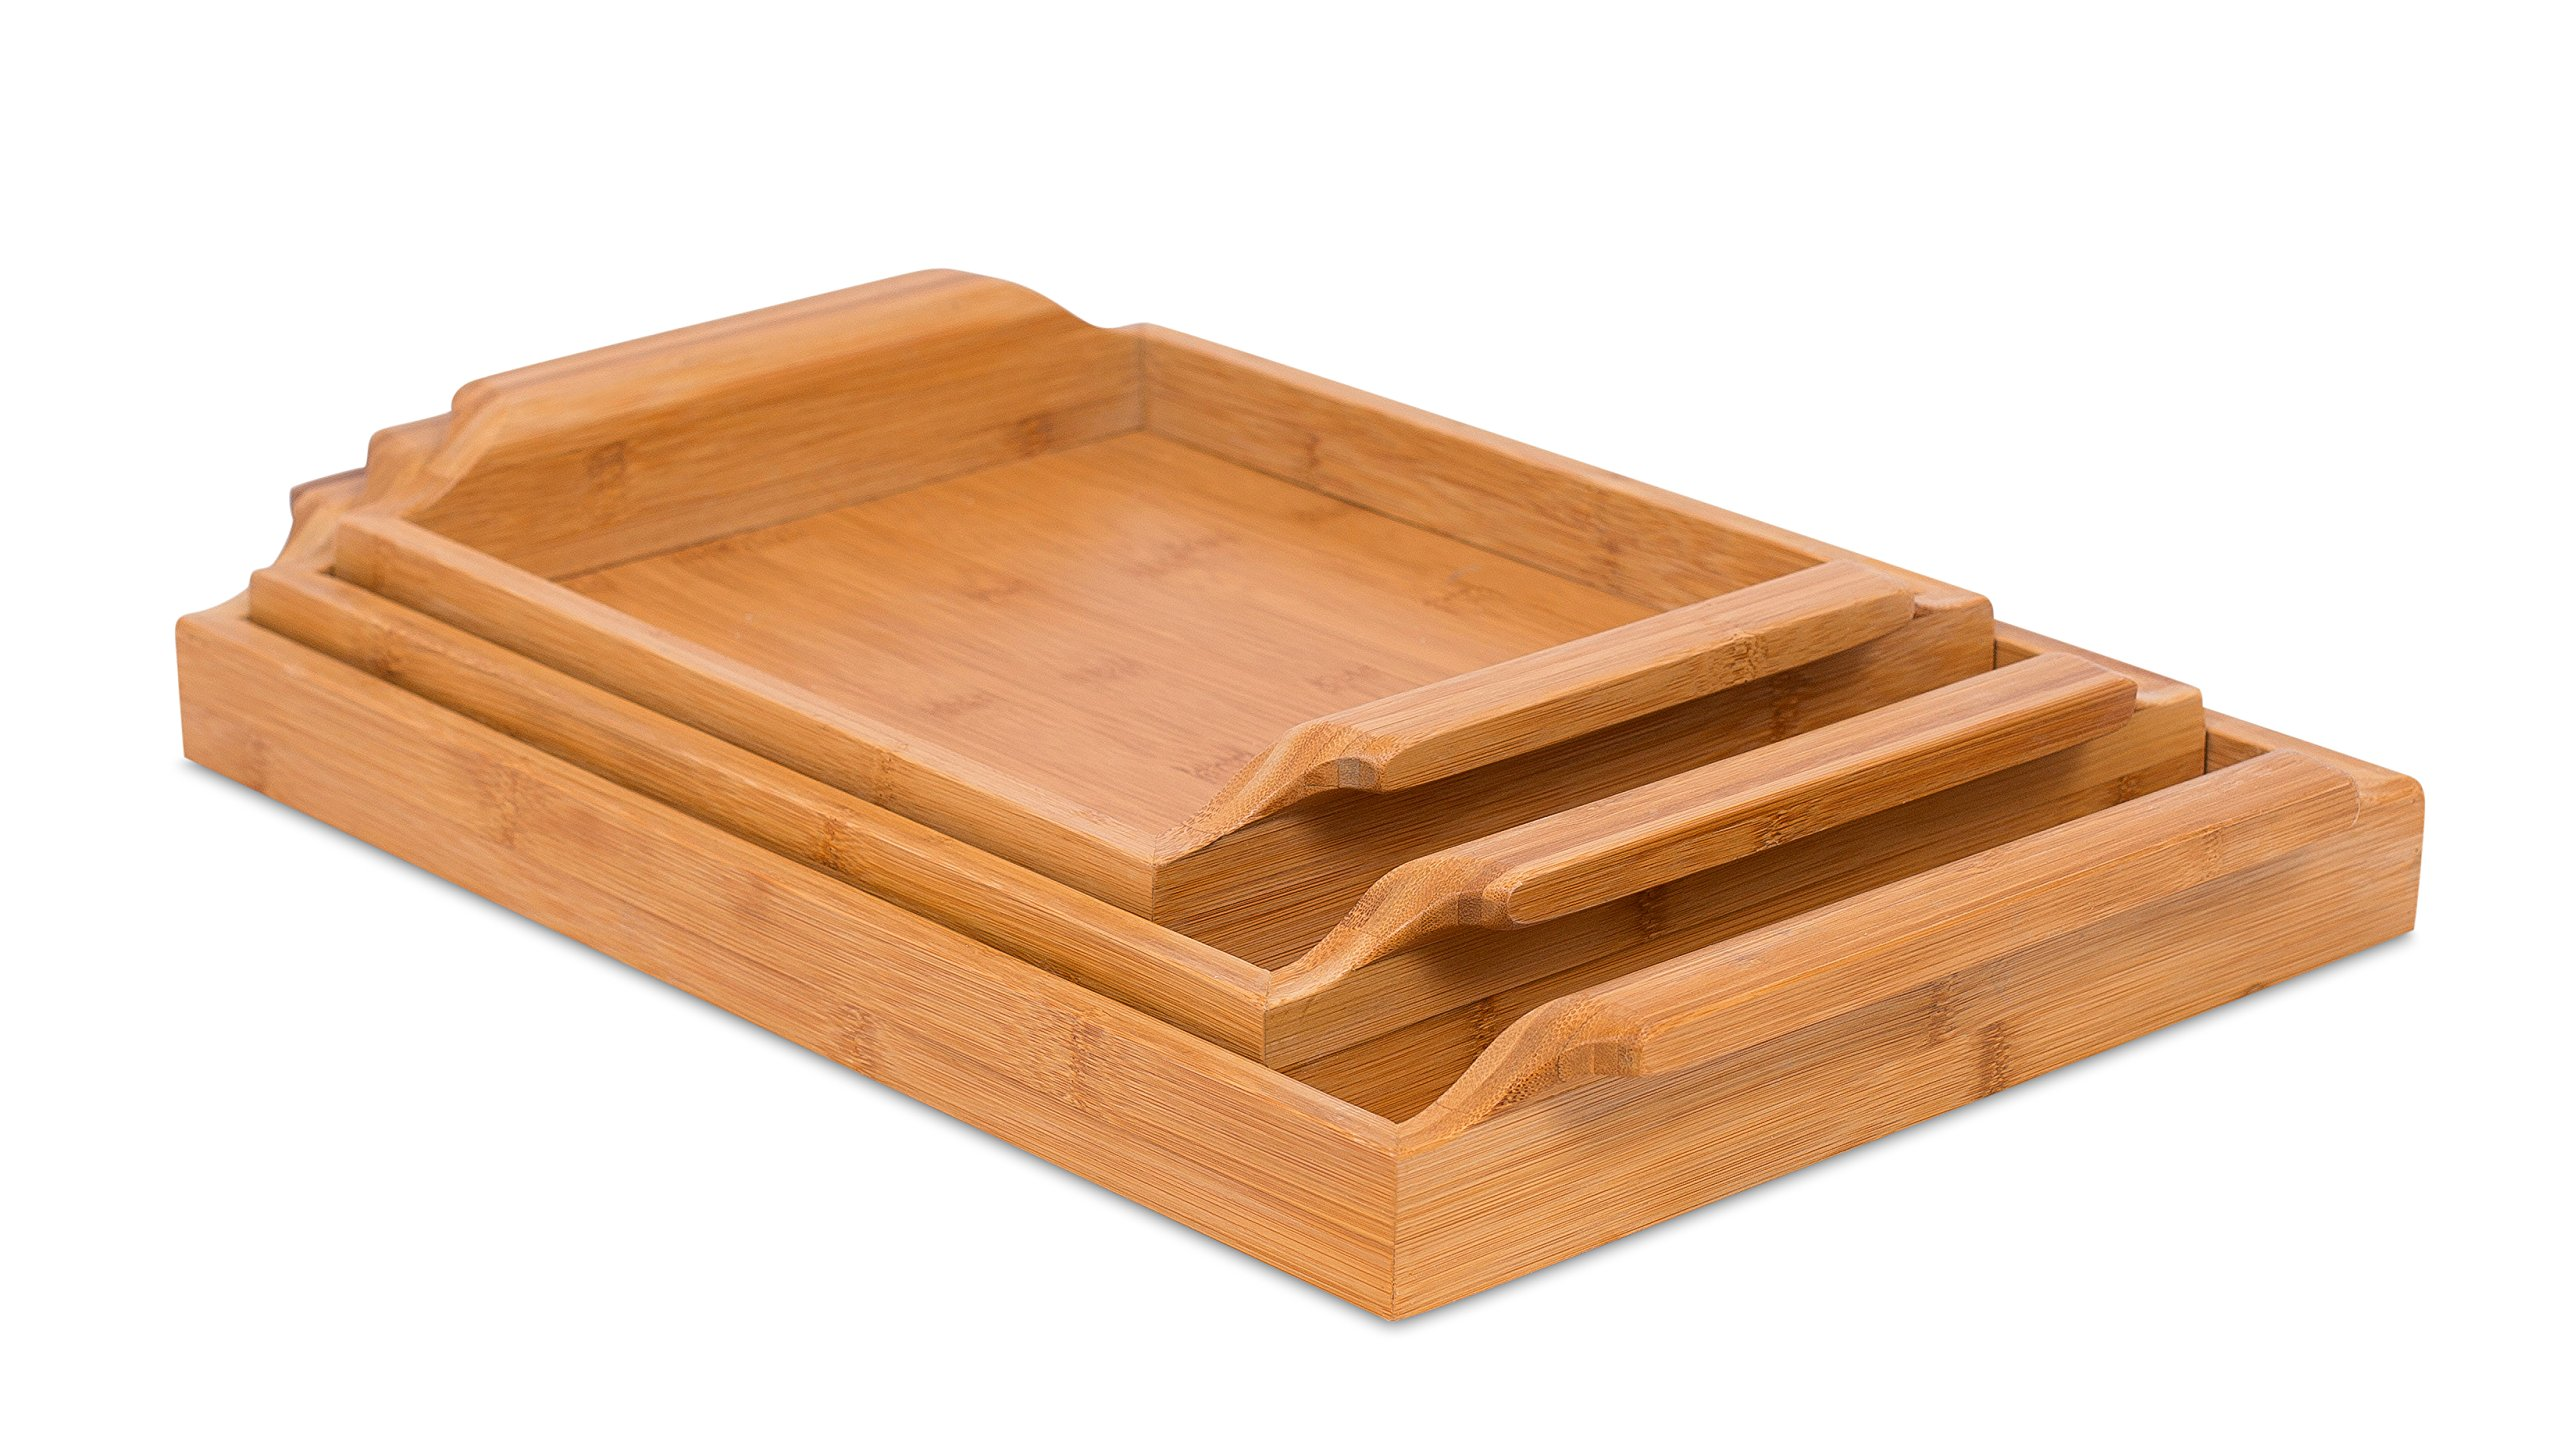 BirdRock Home Bamboo Nesting Breakfast Bed Trays | Set of 3 | Exterior Handles | Serving Tray Wood